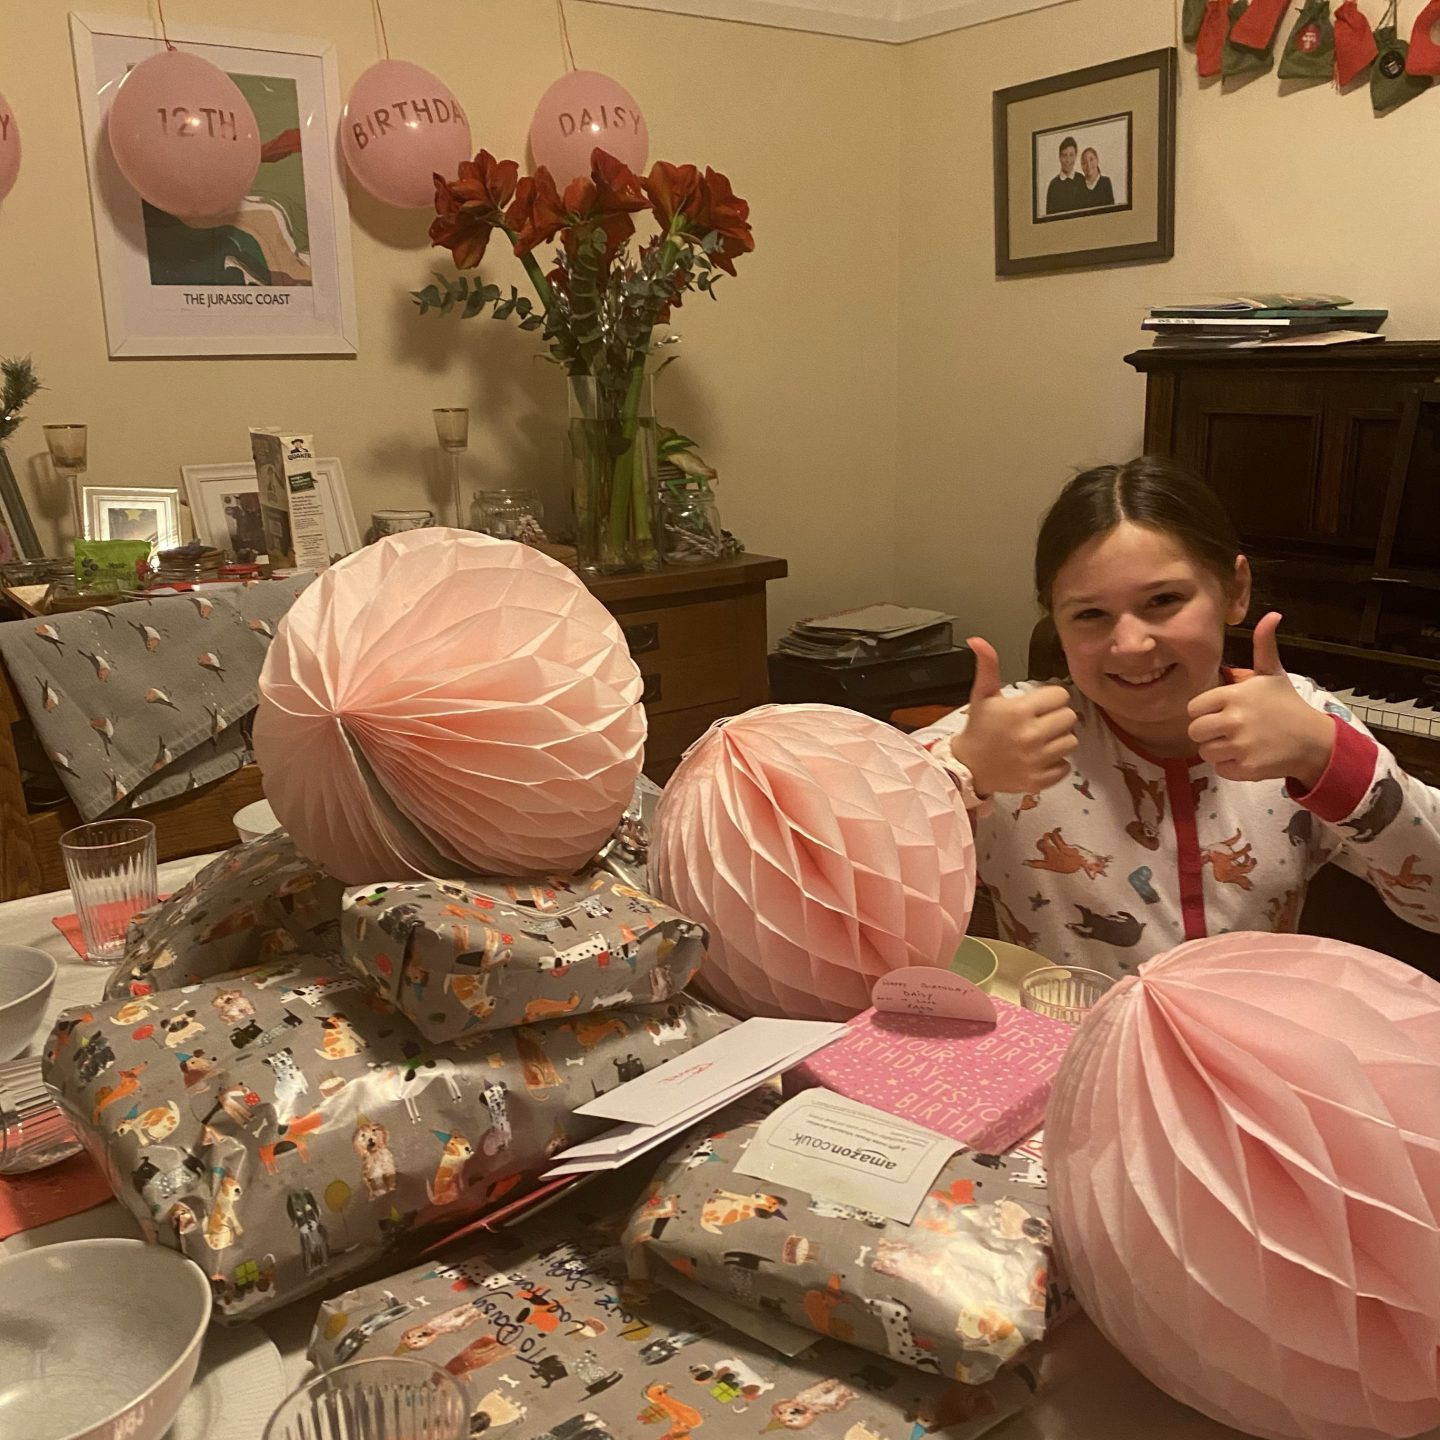 A girl smiling on her Birthday next to presents